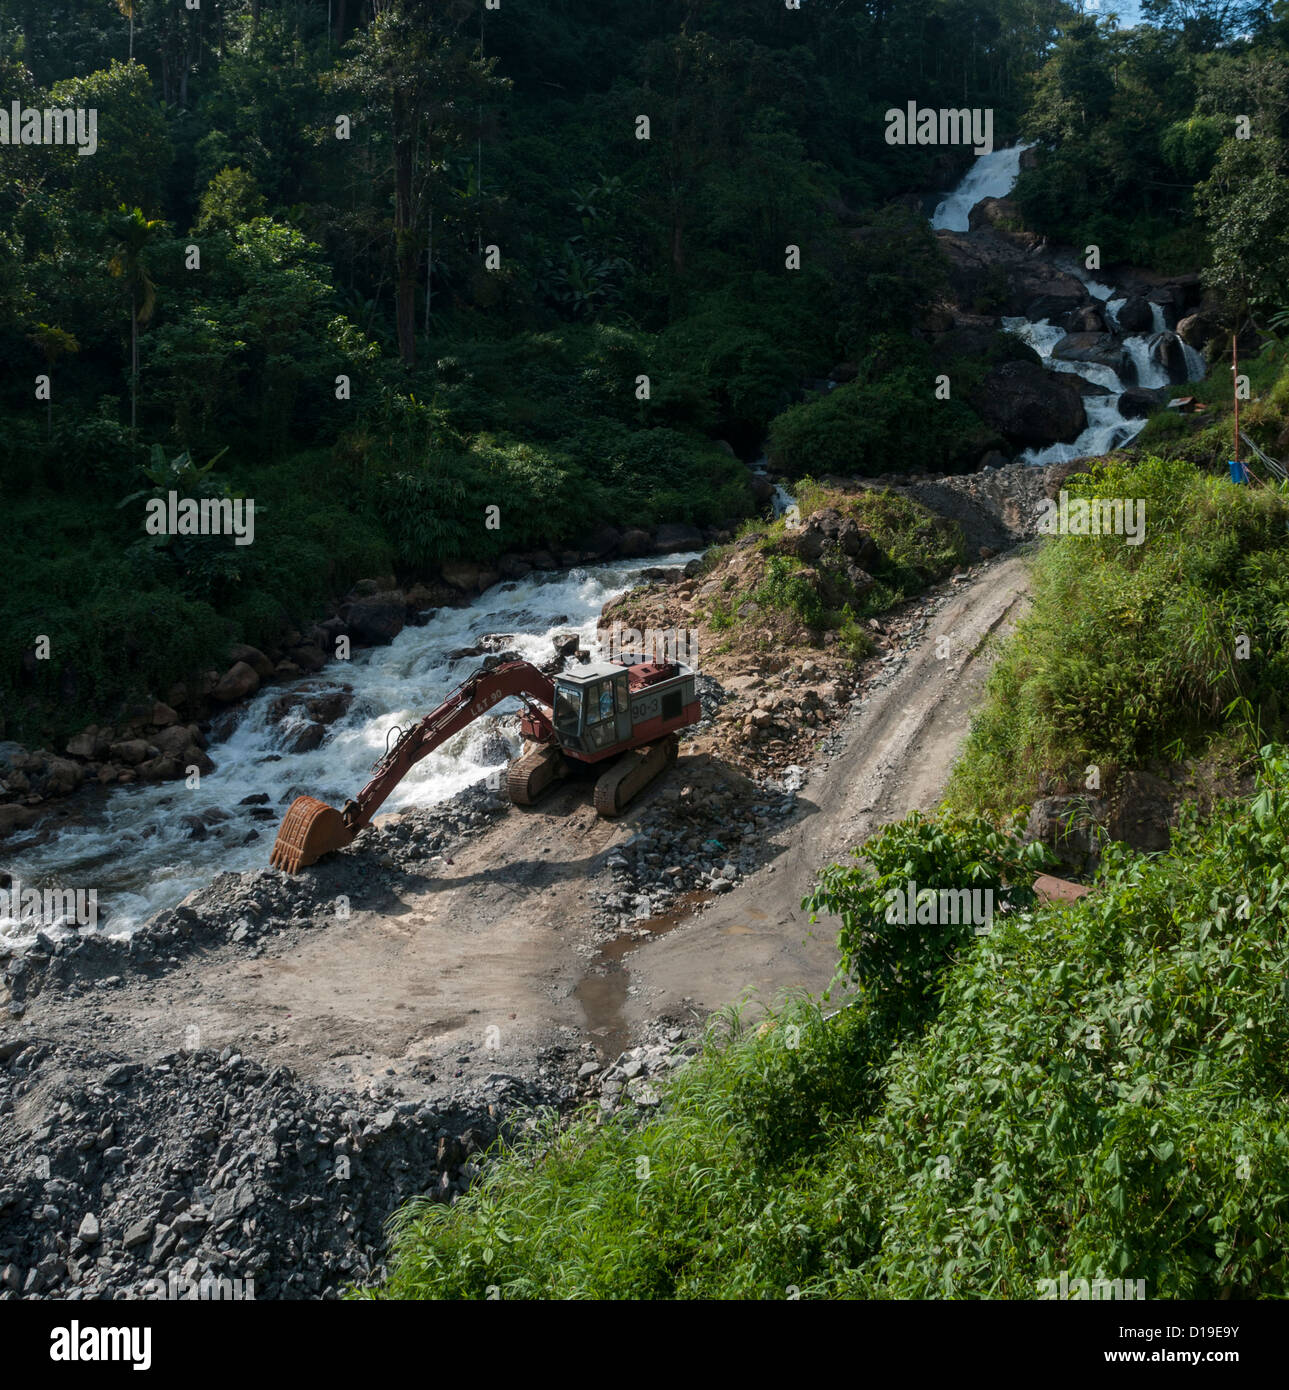 JCB digger making roads through forest river banks - Stock Image